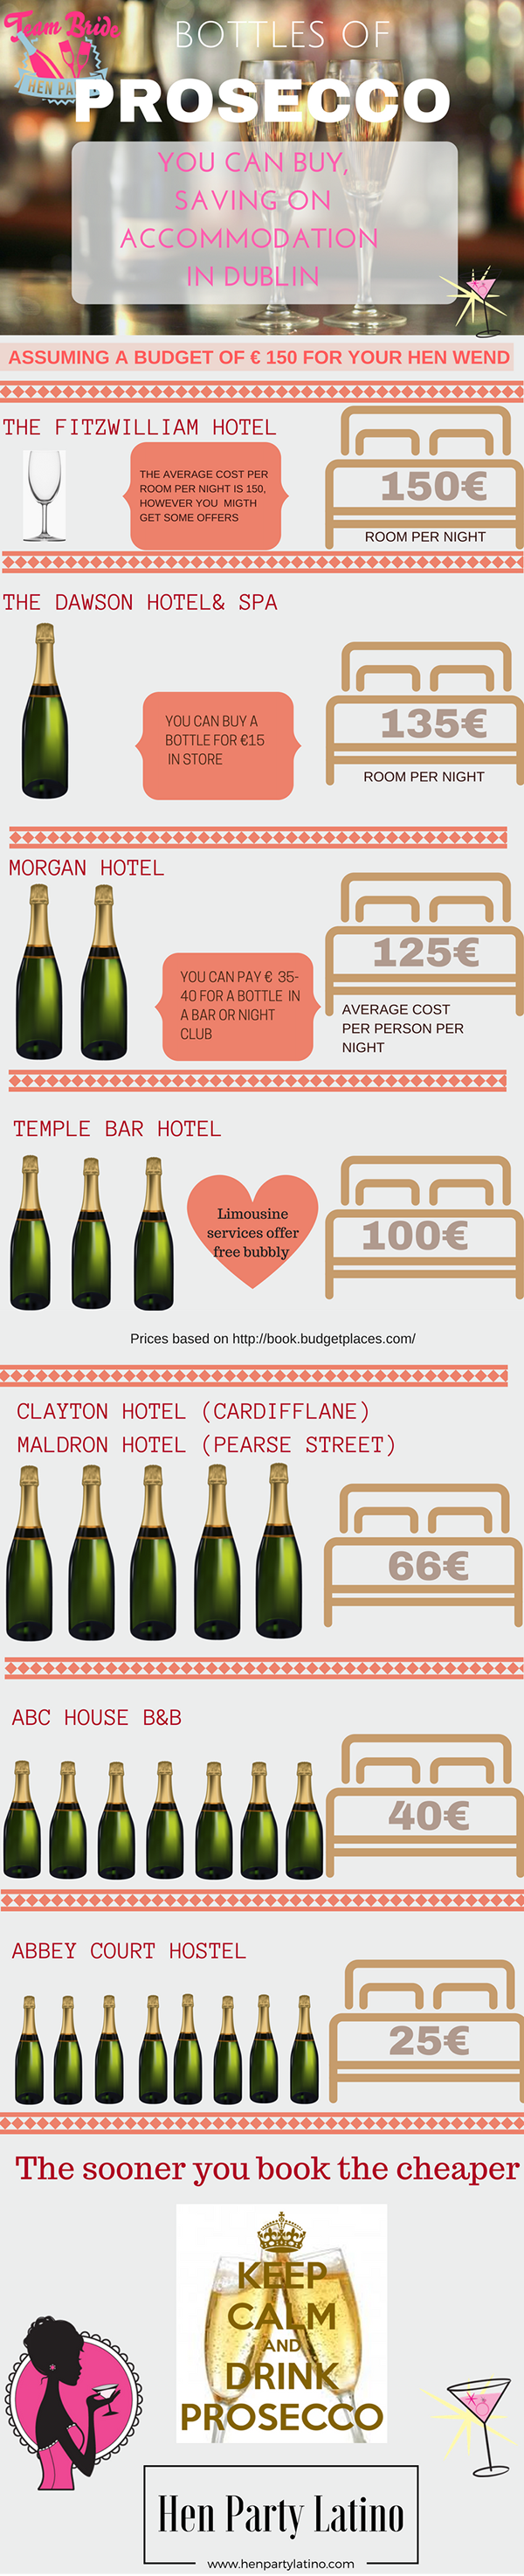 accommodation-vs-prosecco Infographic